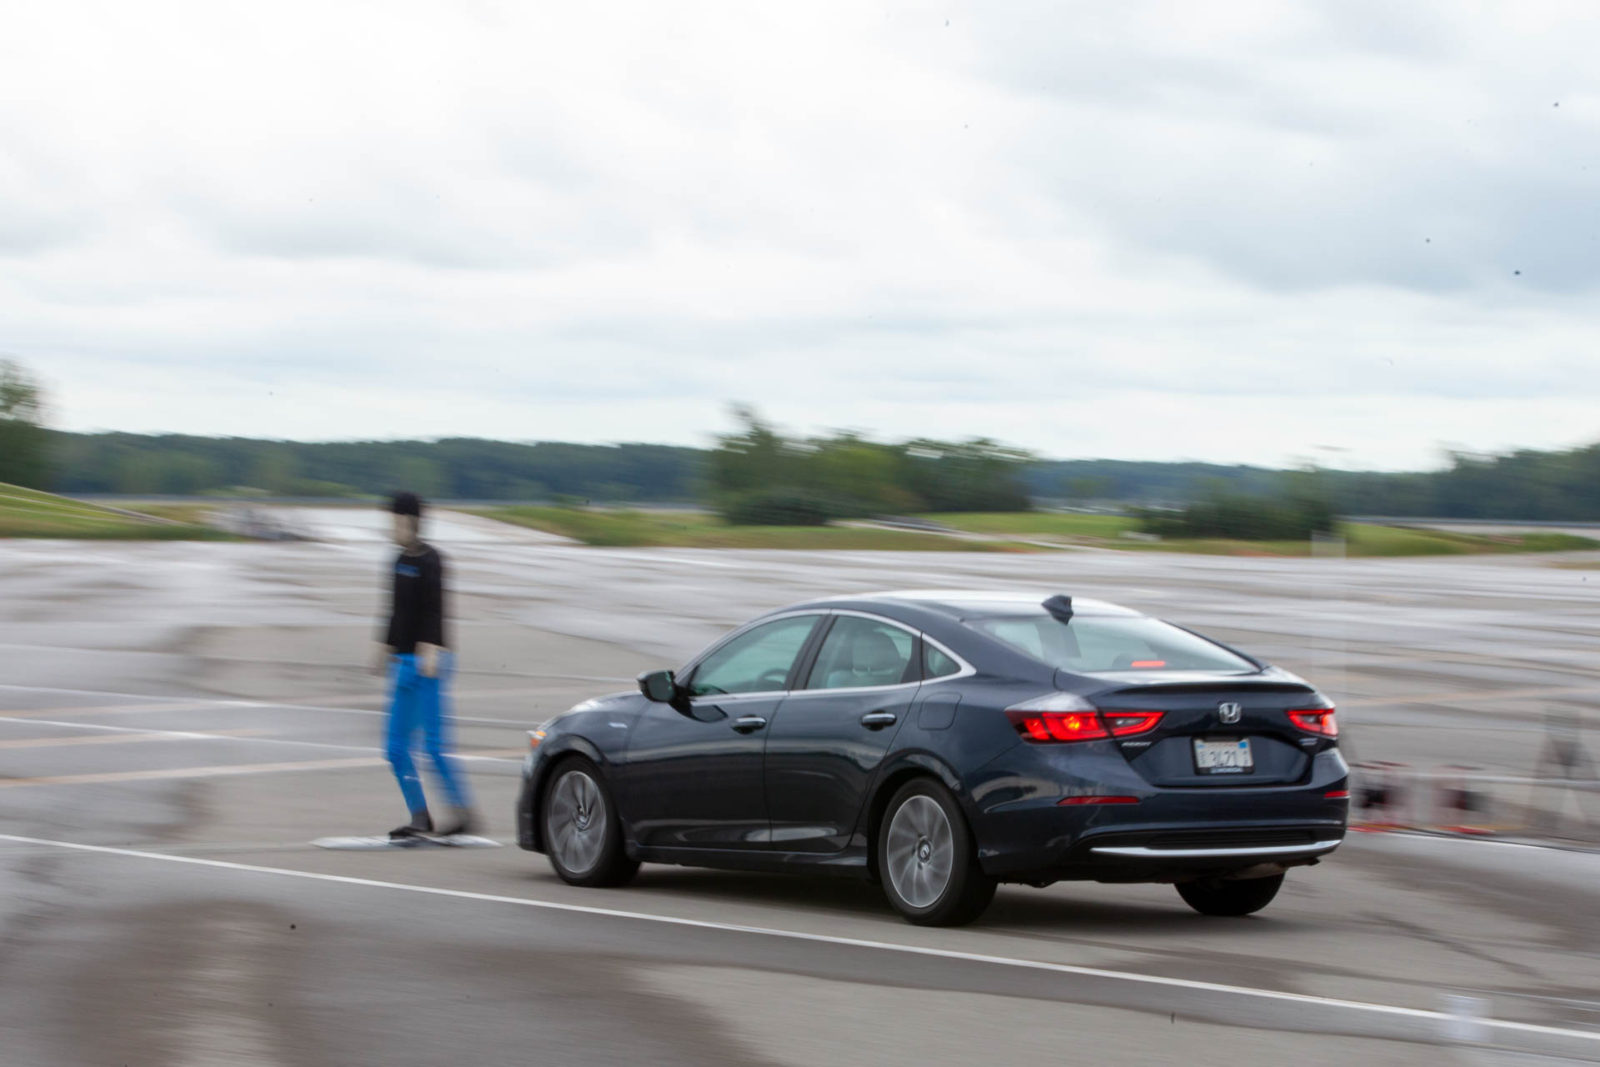 pedestrian-fatalities-spike,-tautara-strike-tuned-to-2,200-hp,-ev-battery-life-addressed:-what's-new-@-the-car-connection